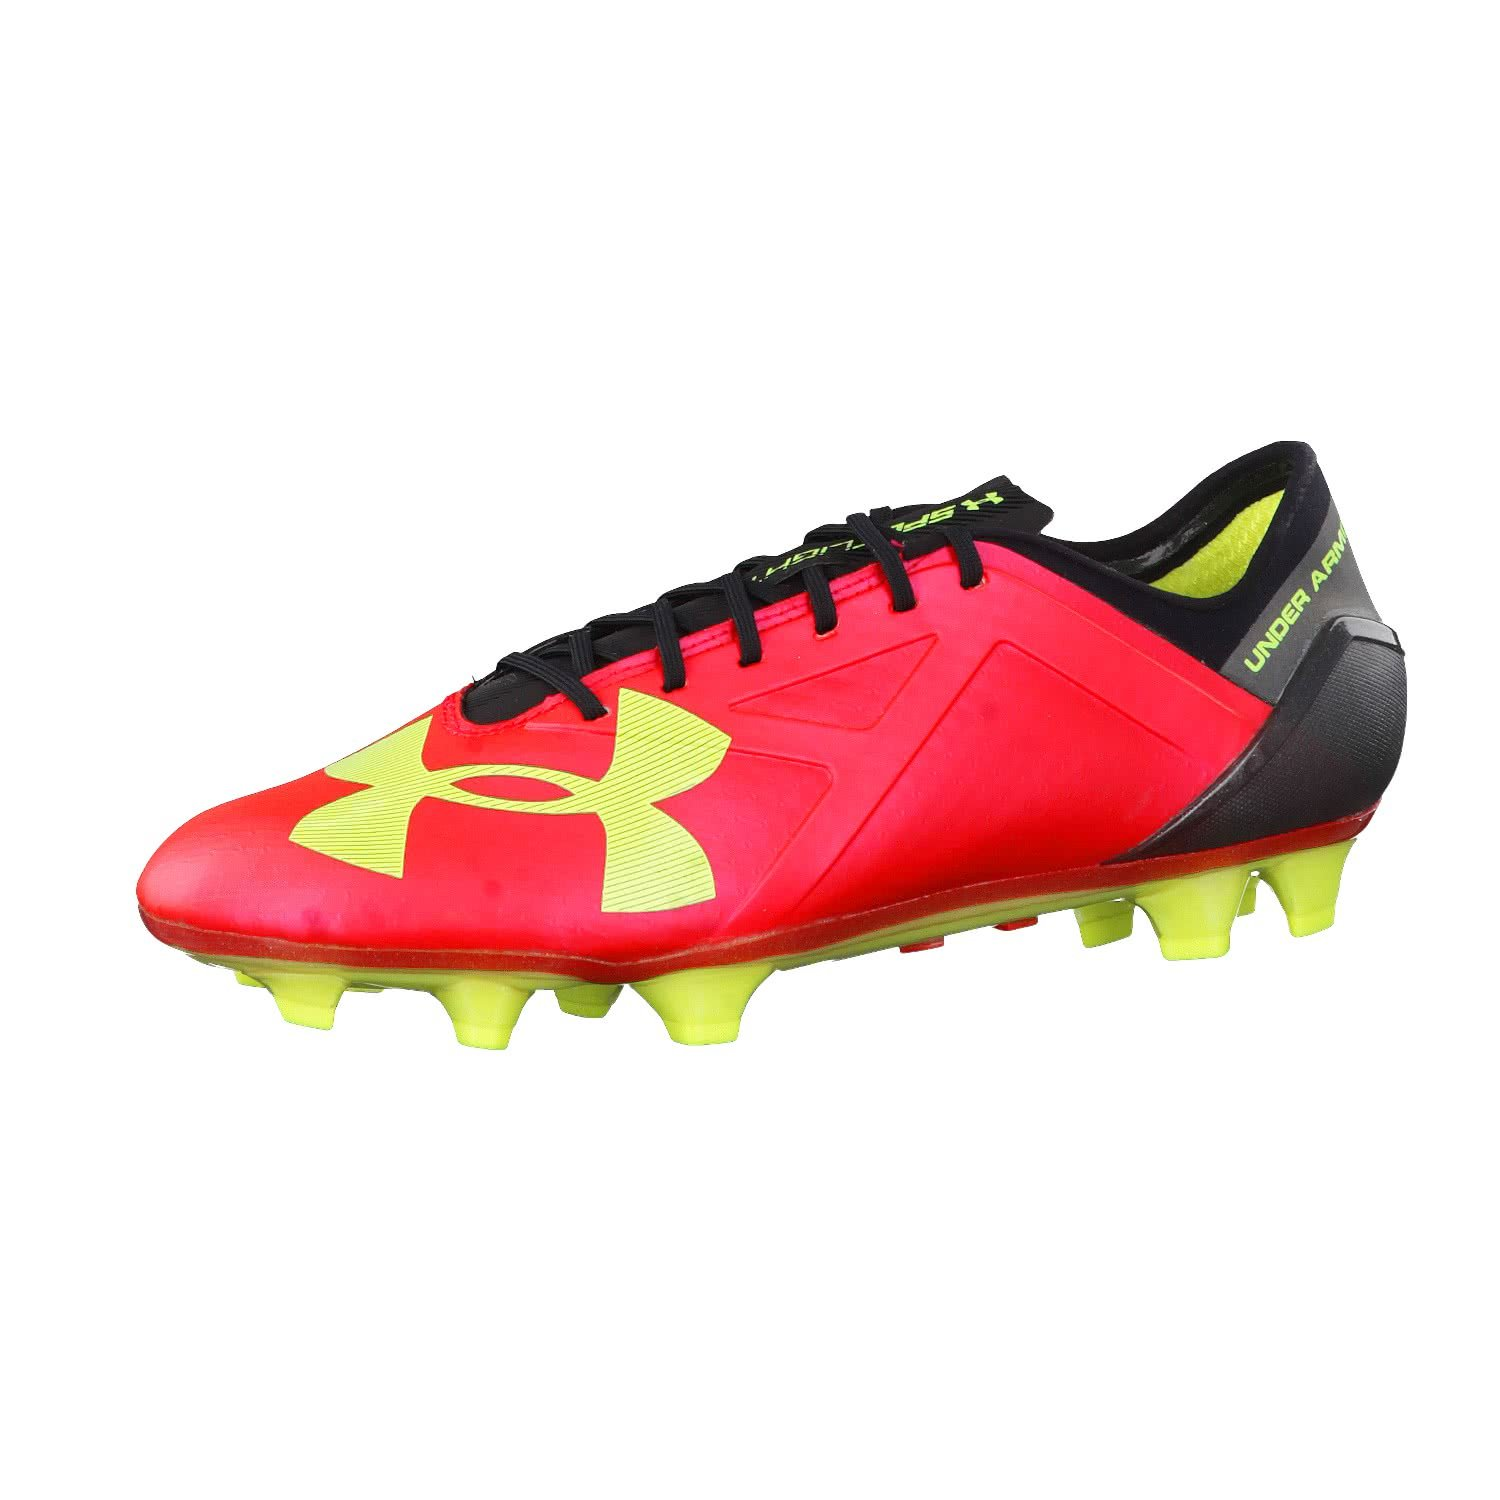 Under Armour メンズ B015D8JY5K 8 D(M) US|Rocket Red/ High-vis Yellow/ Black Rocket Red/ High-vis Yellow/ Black 8 D(M) US